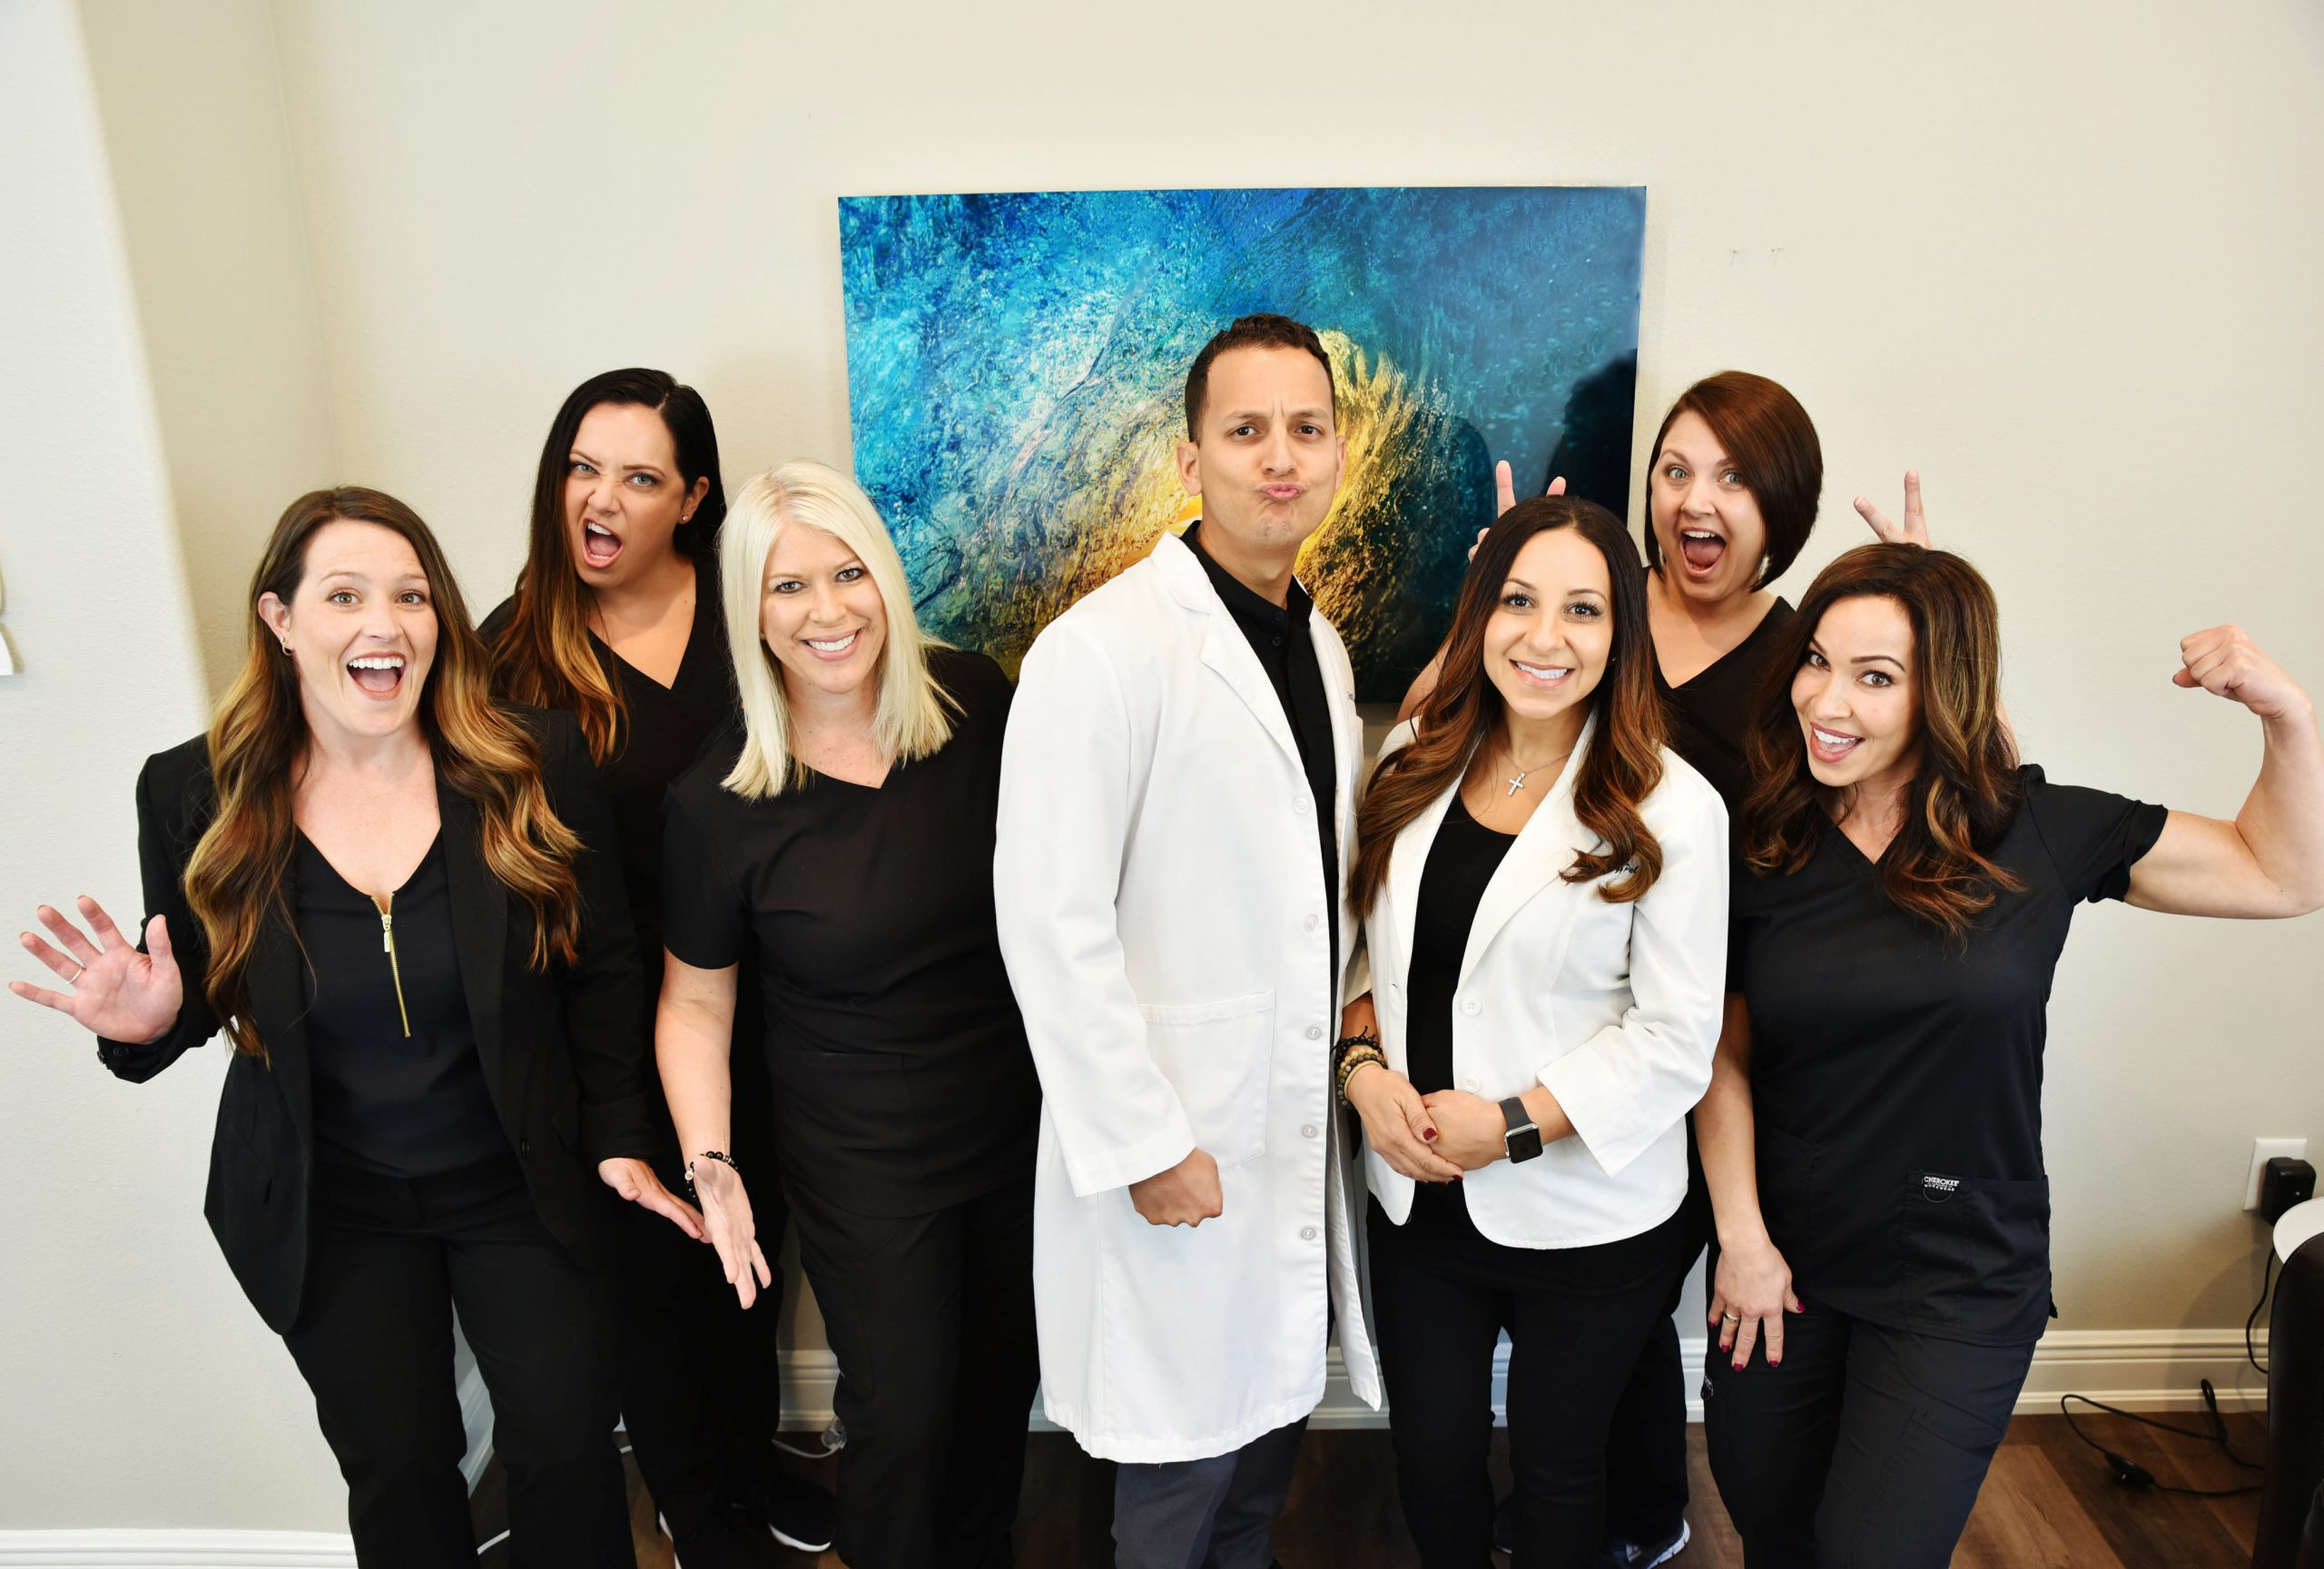 Our Team of dental experts at Ideal Dentistry